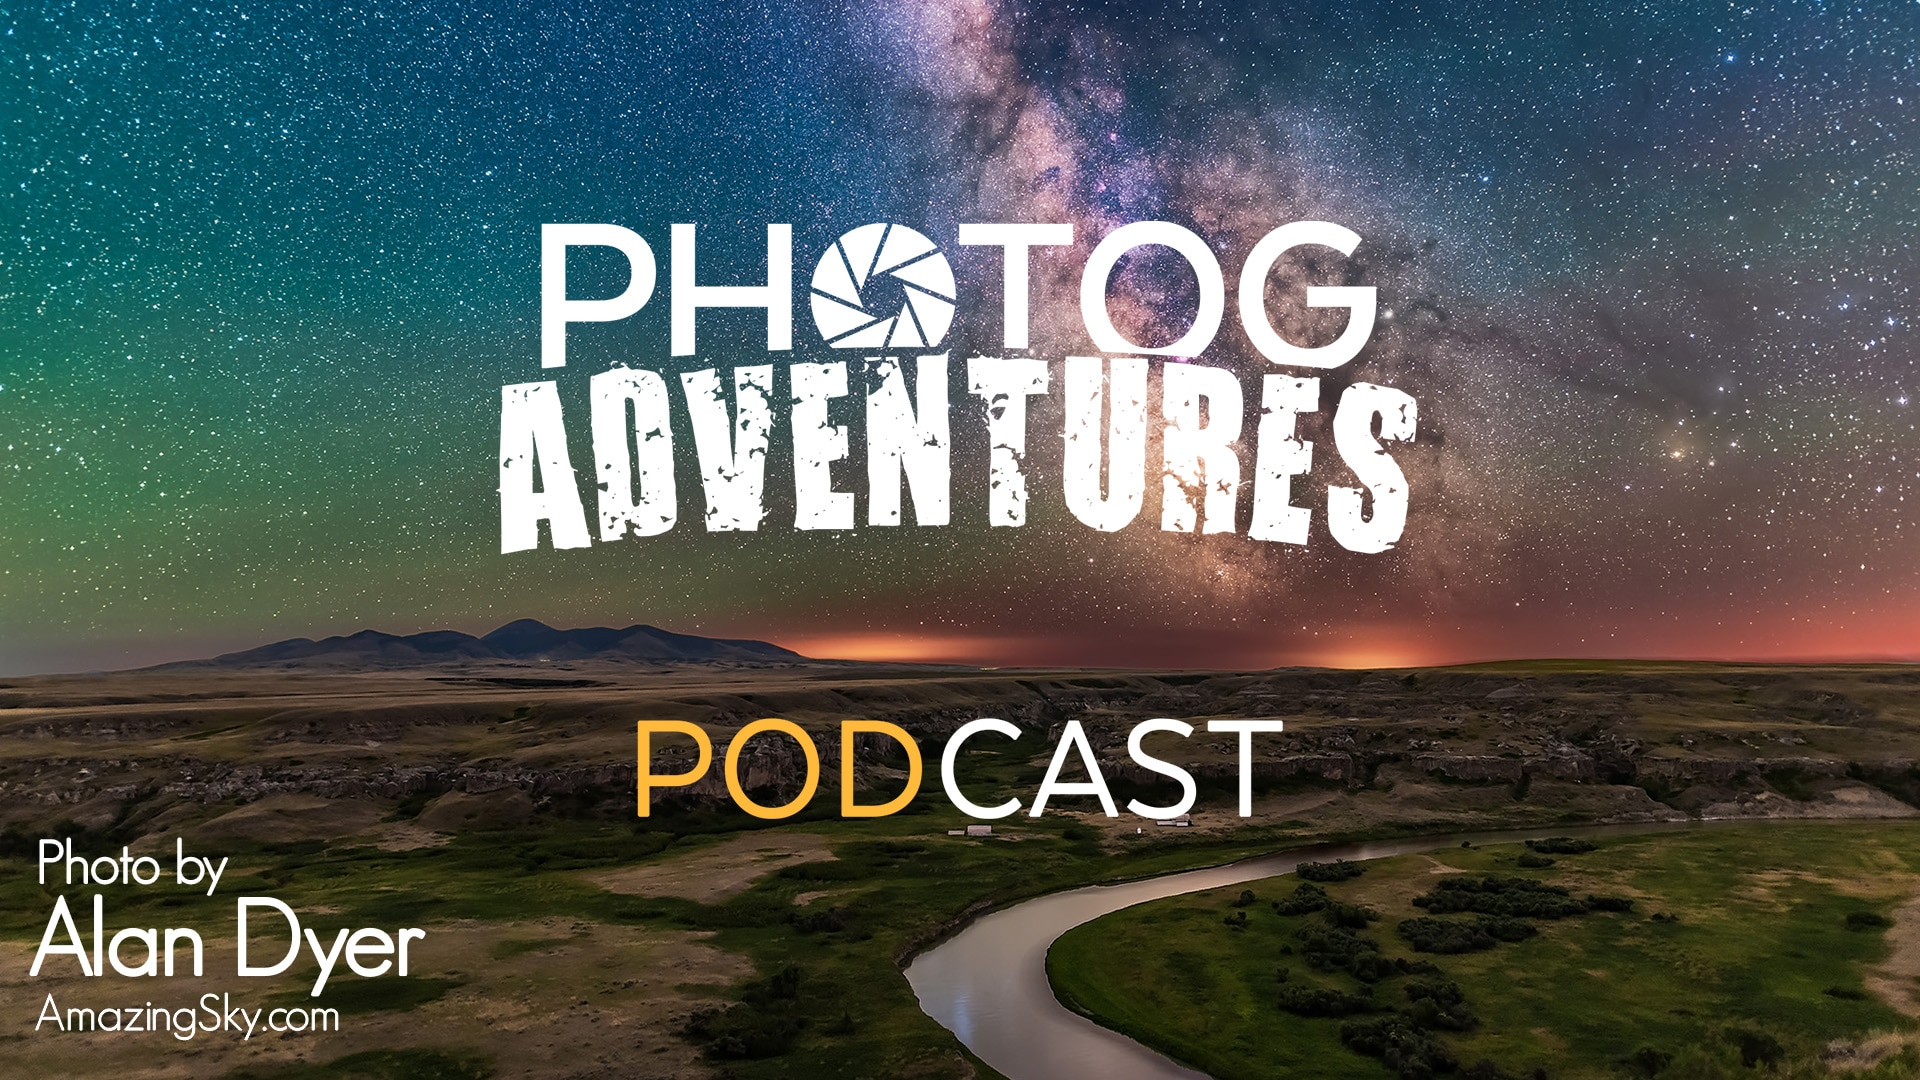 PhotogAdventures.com Podcast 107 with Alan Dyer.